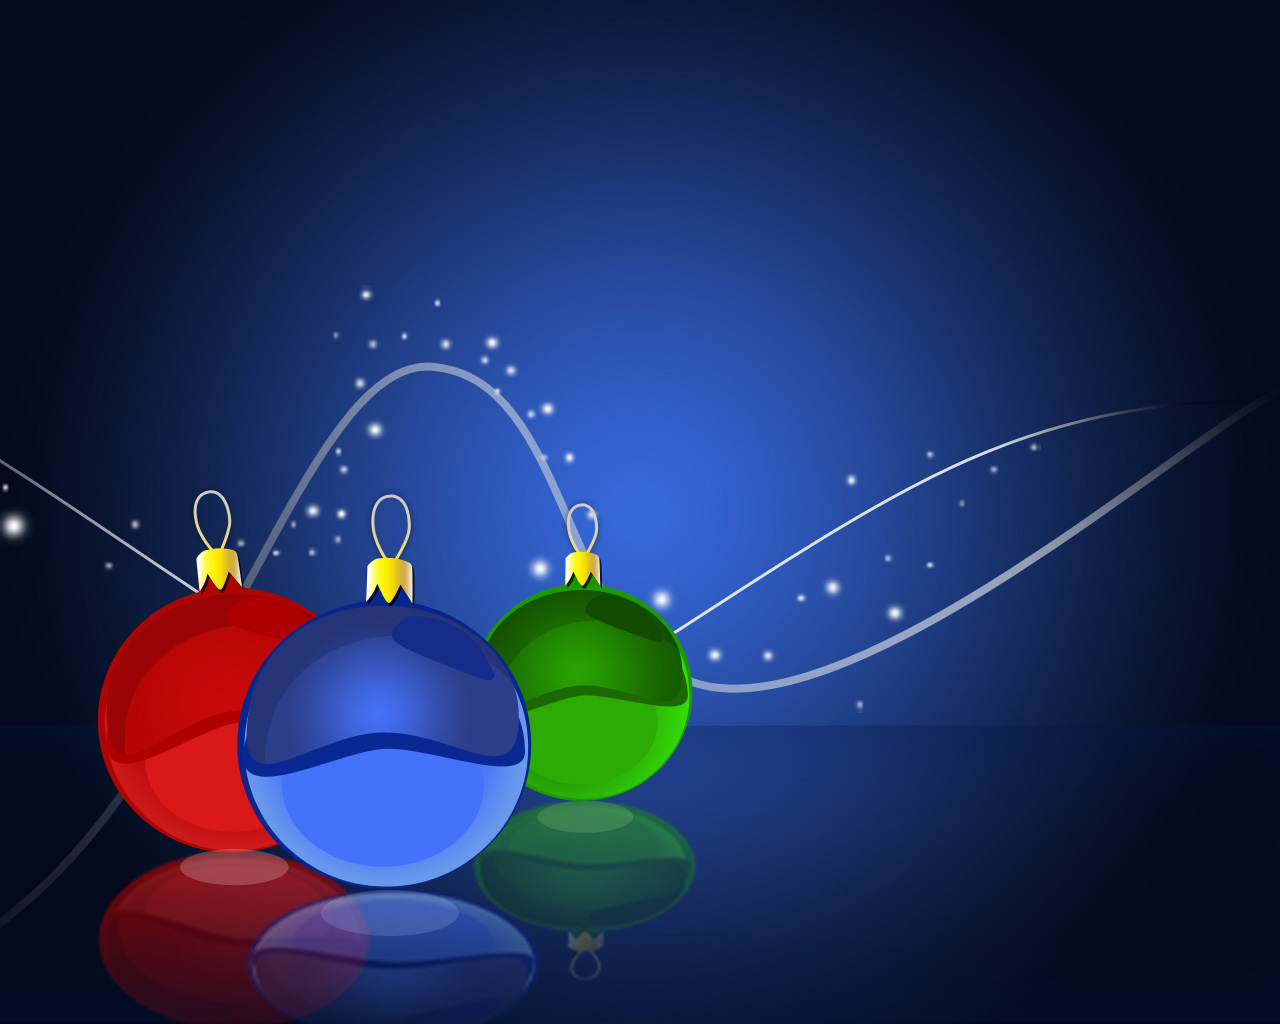 Christmas wallpaper backgrounds christmas wallpaper 1280x1024